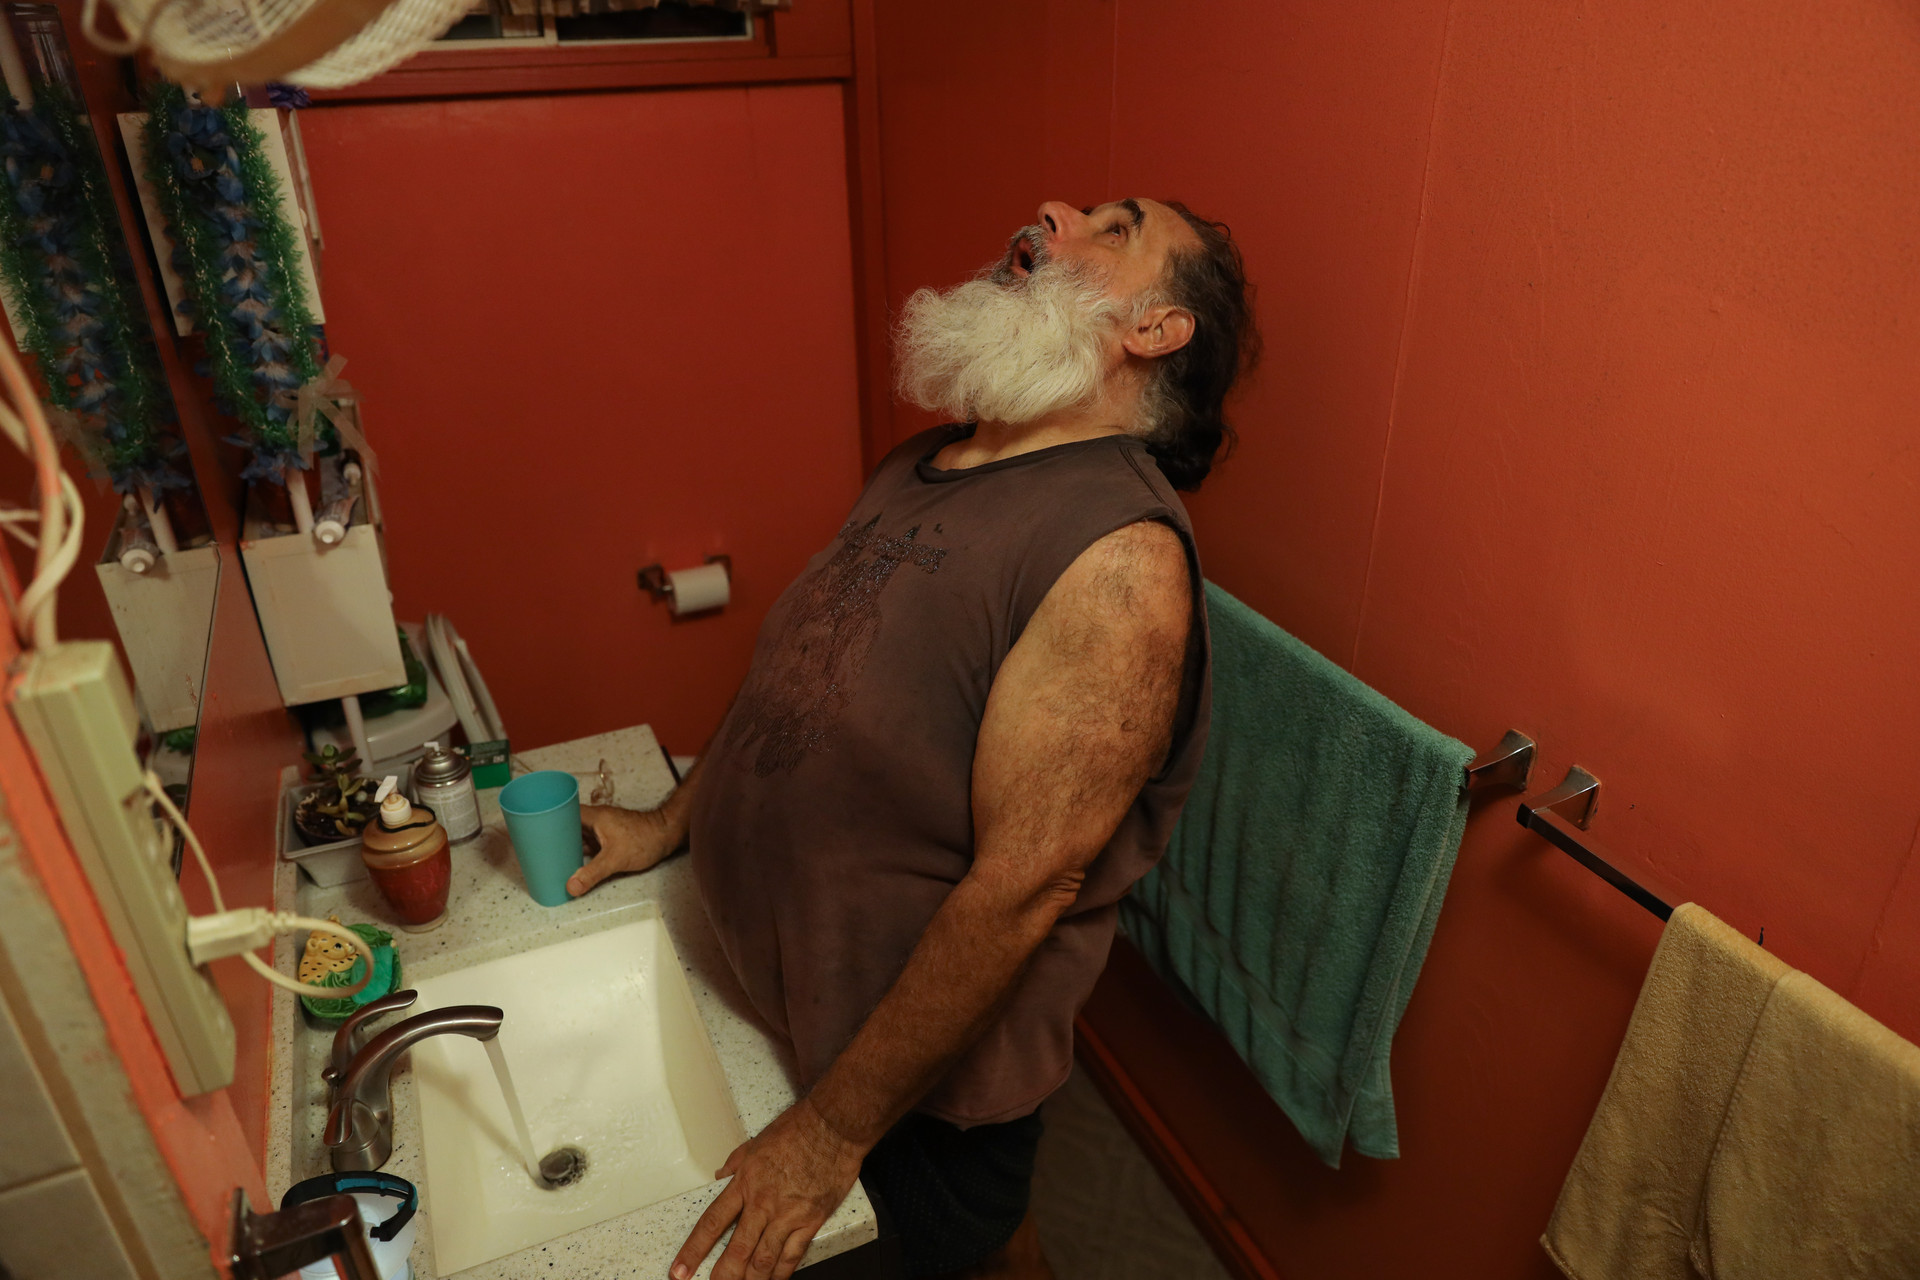 Gonzales gurgles in the bathroom after arriving at his house from the show on December 11, 2020. He believes continuous cheering towards the people worsen his voice. For recovery he gurgles frequently after the shows.